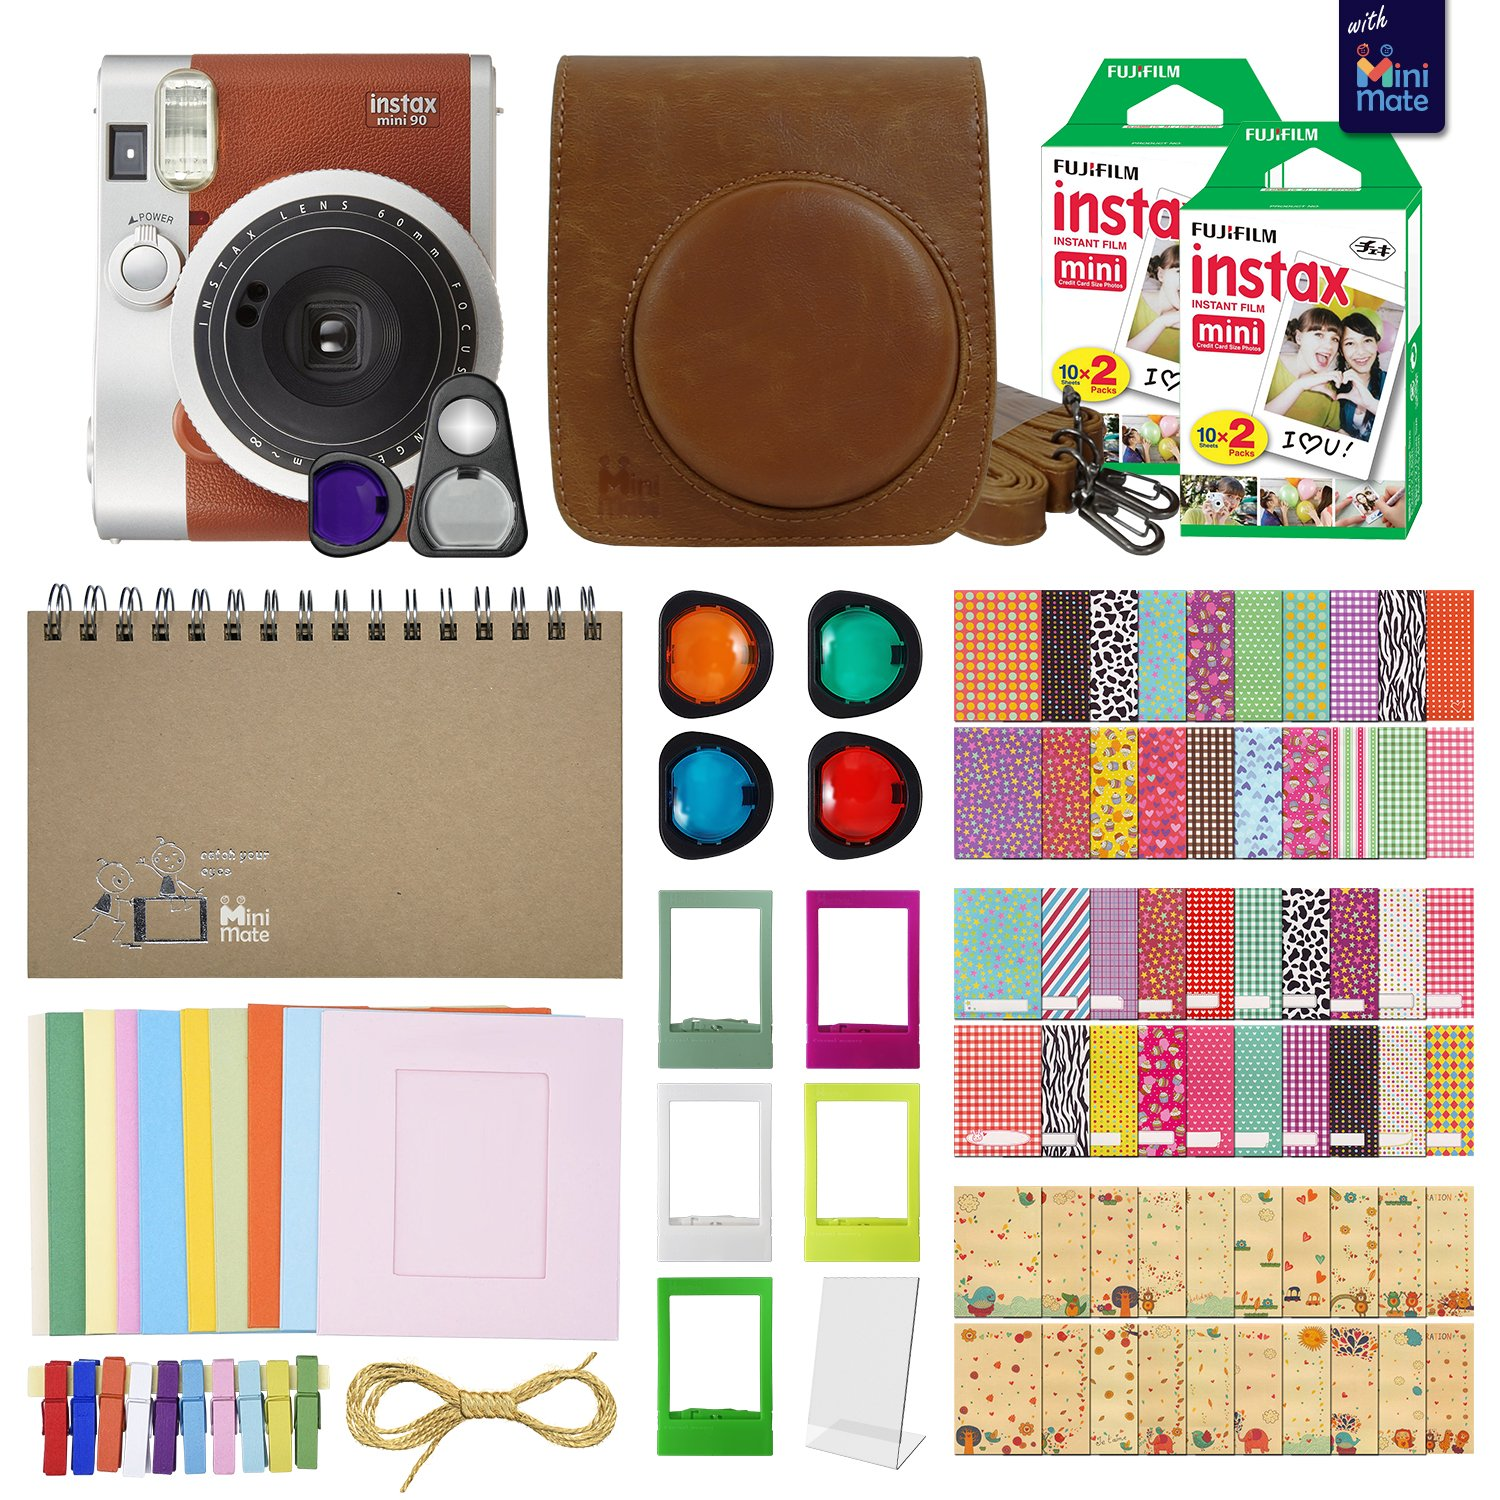 Fujifilm Instax Mini 90 Neo Classic Instant Film Camera (Brown) with 40 Instant Film + MiniMate Accessory Bundle. PU Leather Case, Frames, Retro Photo Album, Selfie Lens, Colored Filters and more by MiniMate